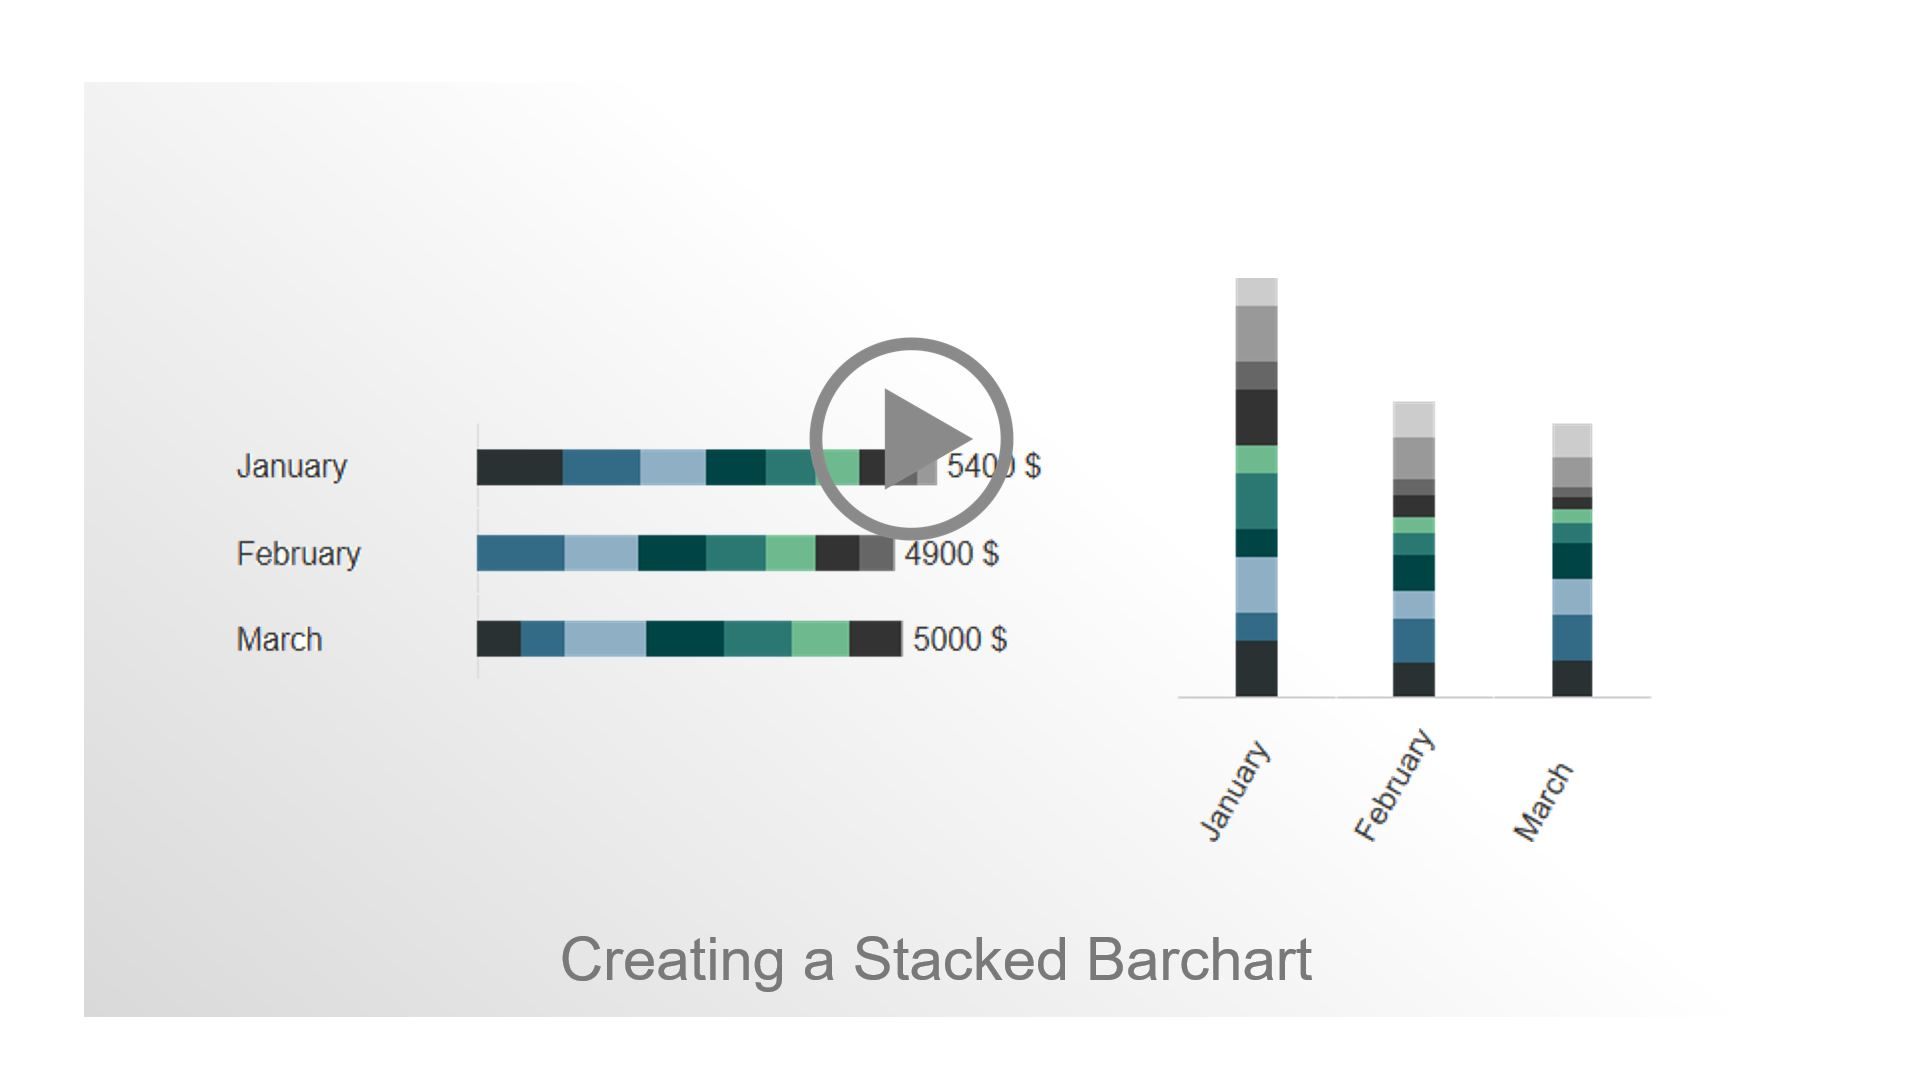 Creating a stacked barchart in Axure, Tutorial